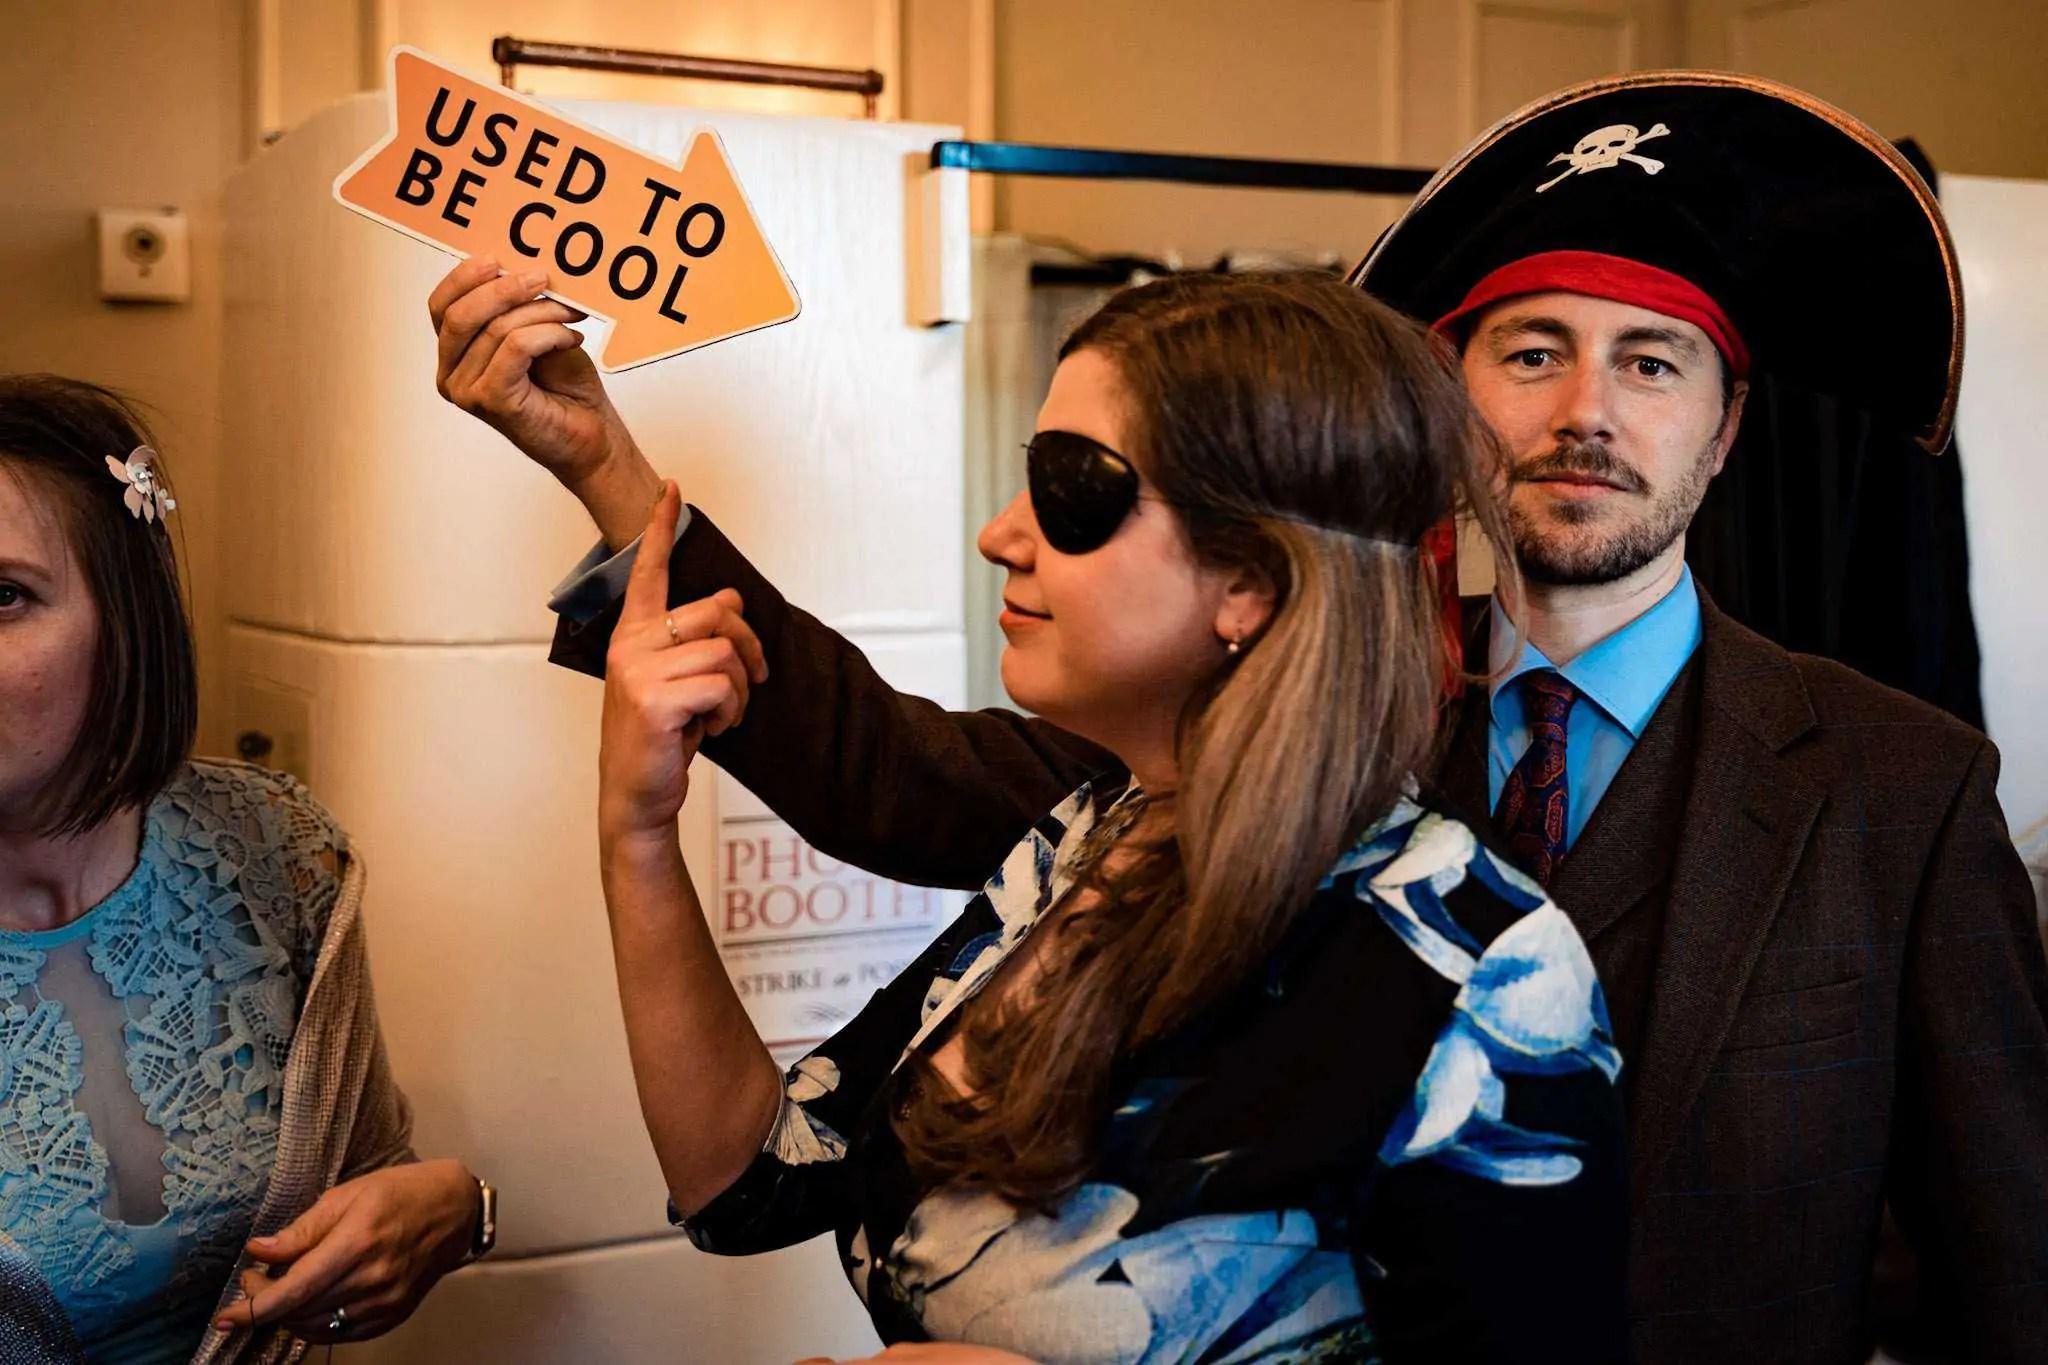 A funny picture at a wedding in Hampshire of a man holding a 'used to be cool' sign